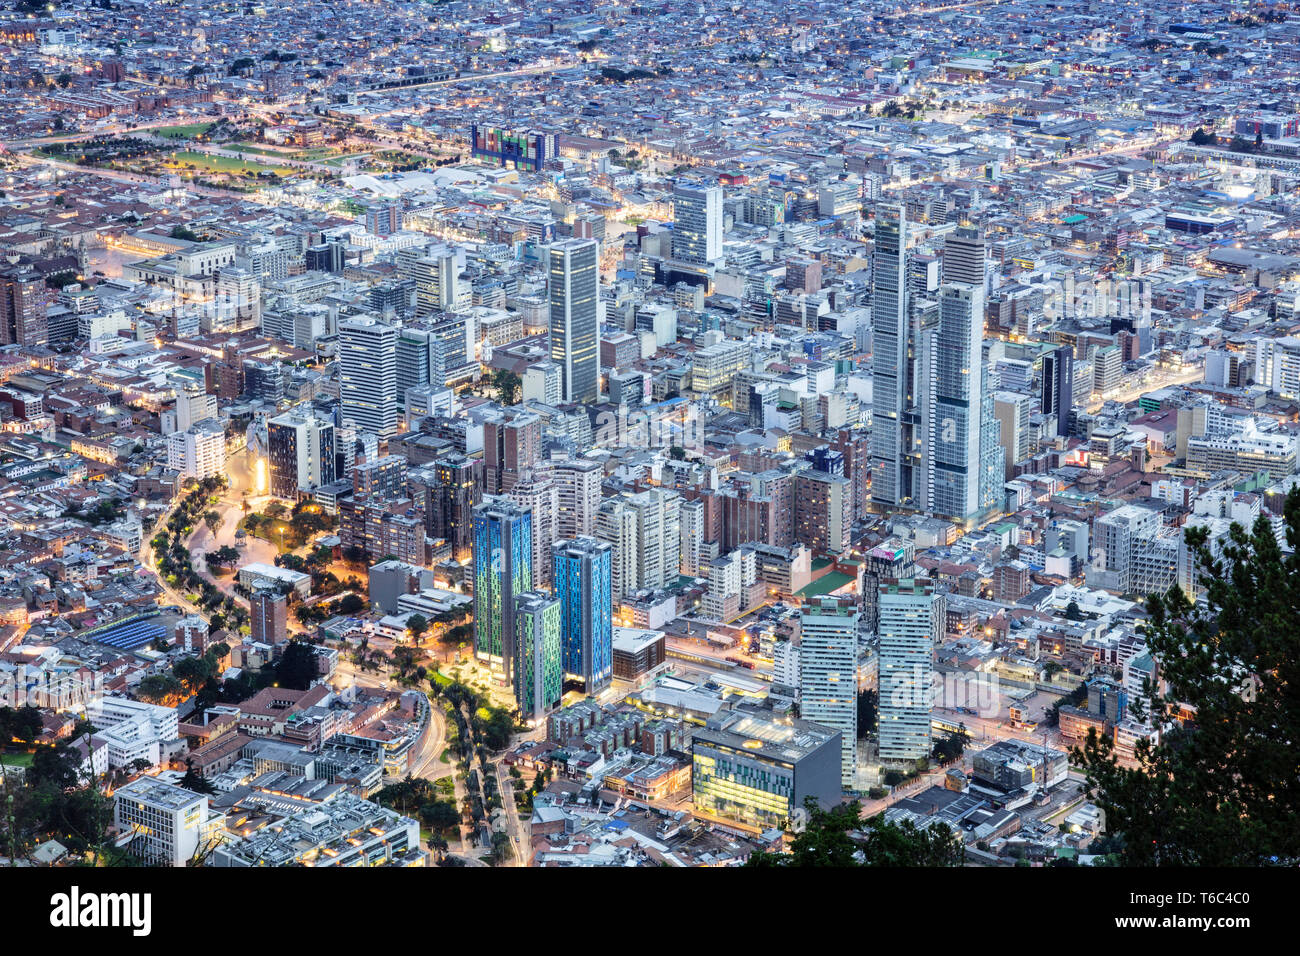 South America, Colombia, Bogota, elevated view of the city centre showing illuminated buildings - Stock Image